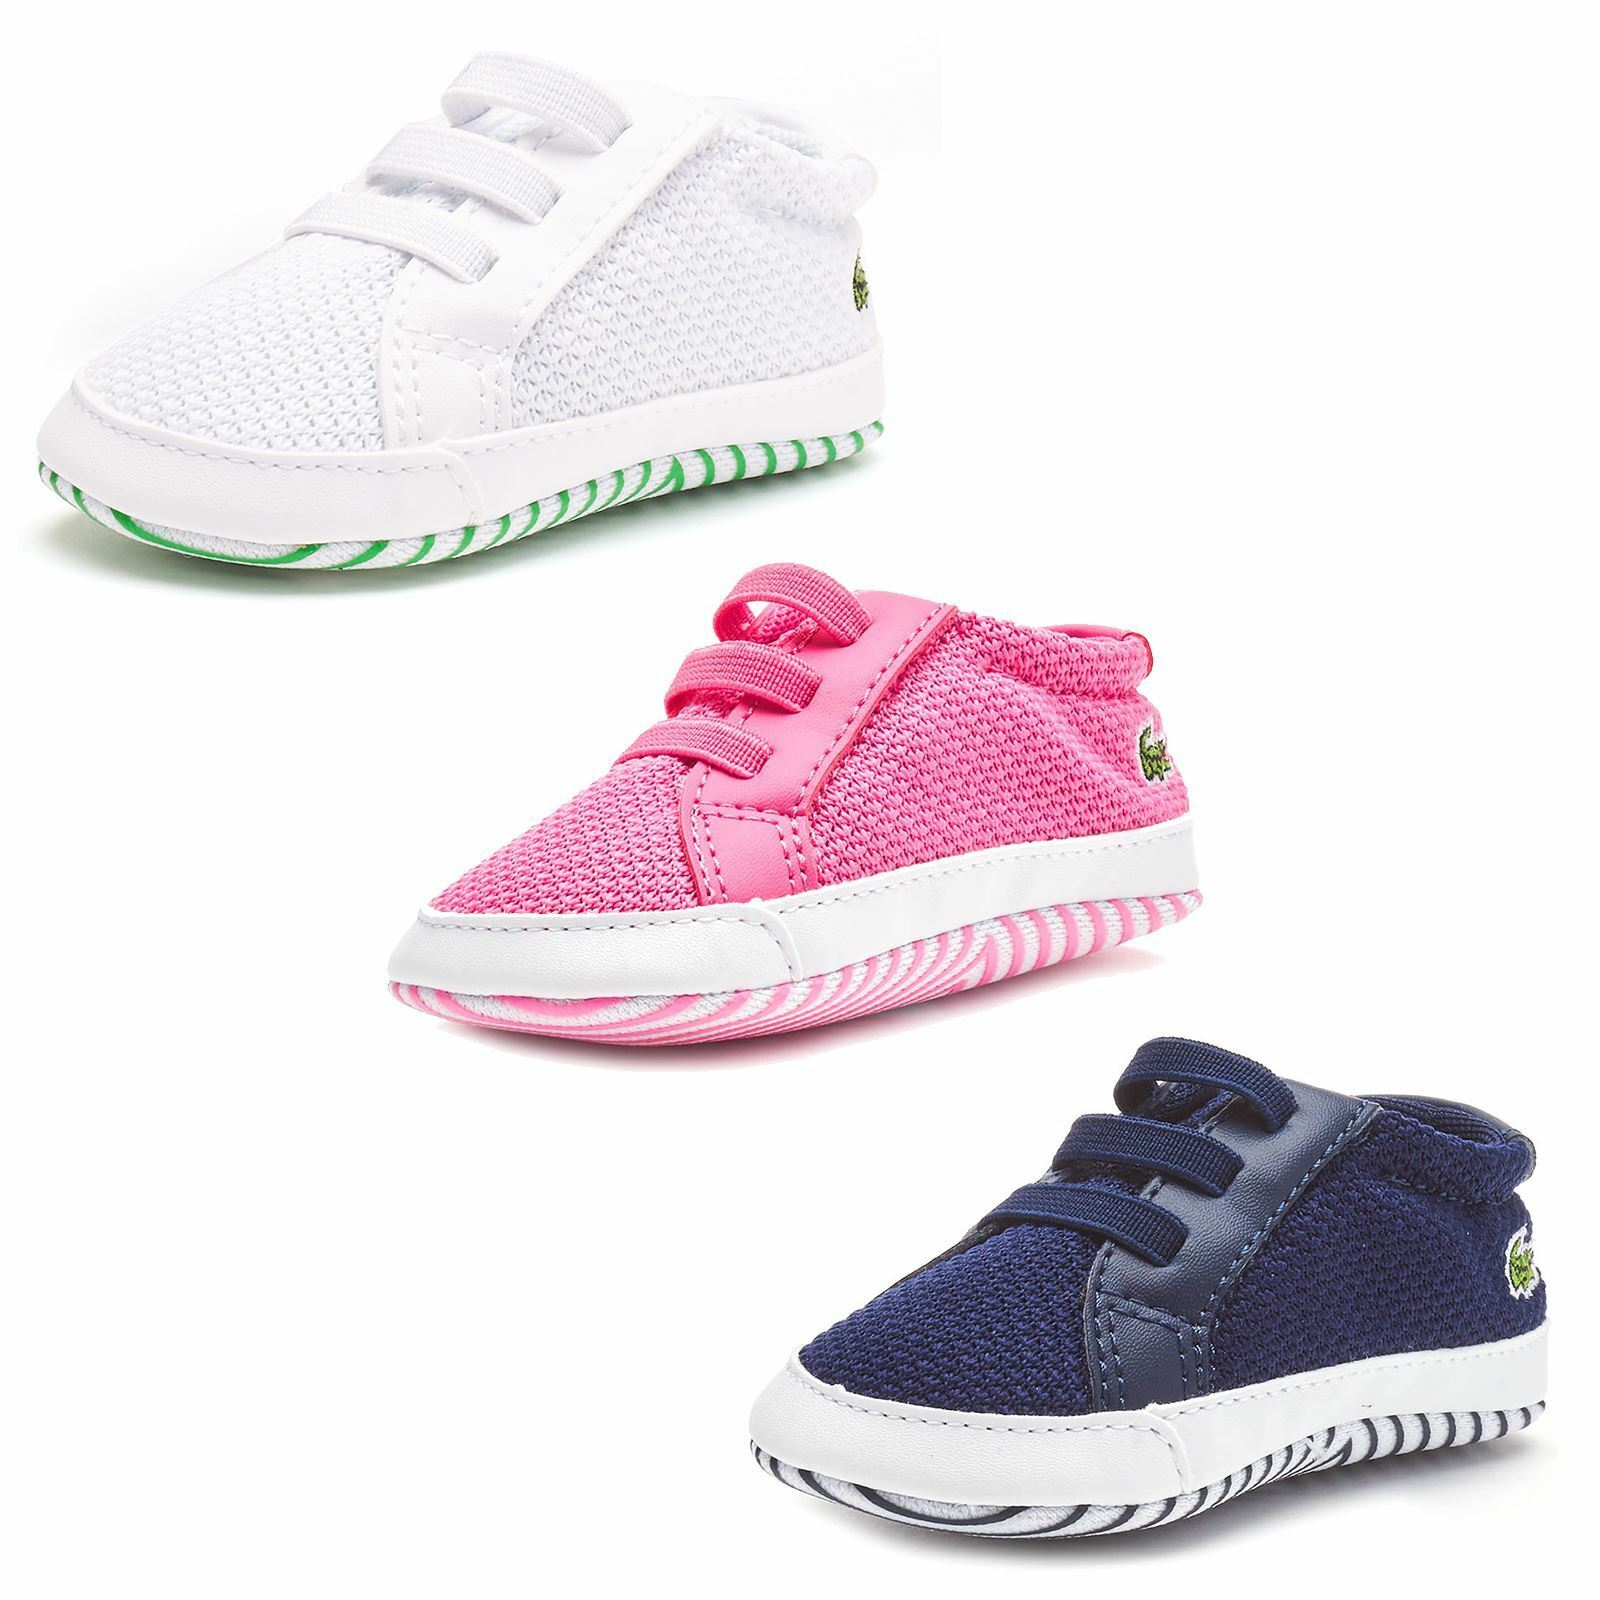 a07651124f5d1 Kids s Lacoste L 1212 Crib 318 1 CAB Slippers in Pink - Size UK 3 Infant    EU 19 for sale online